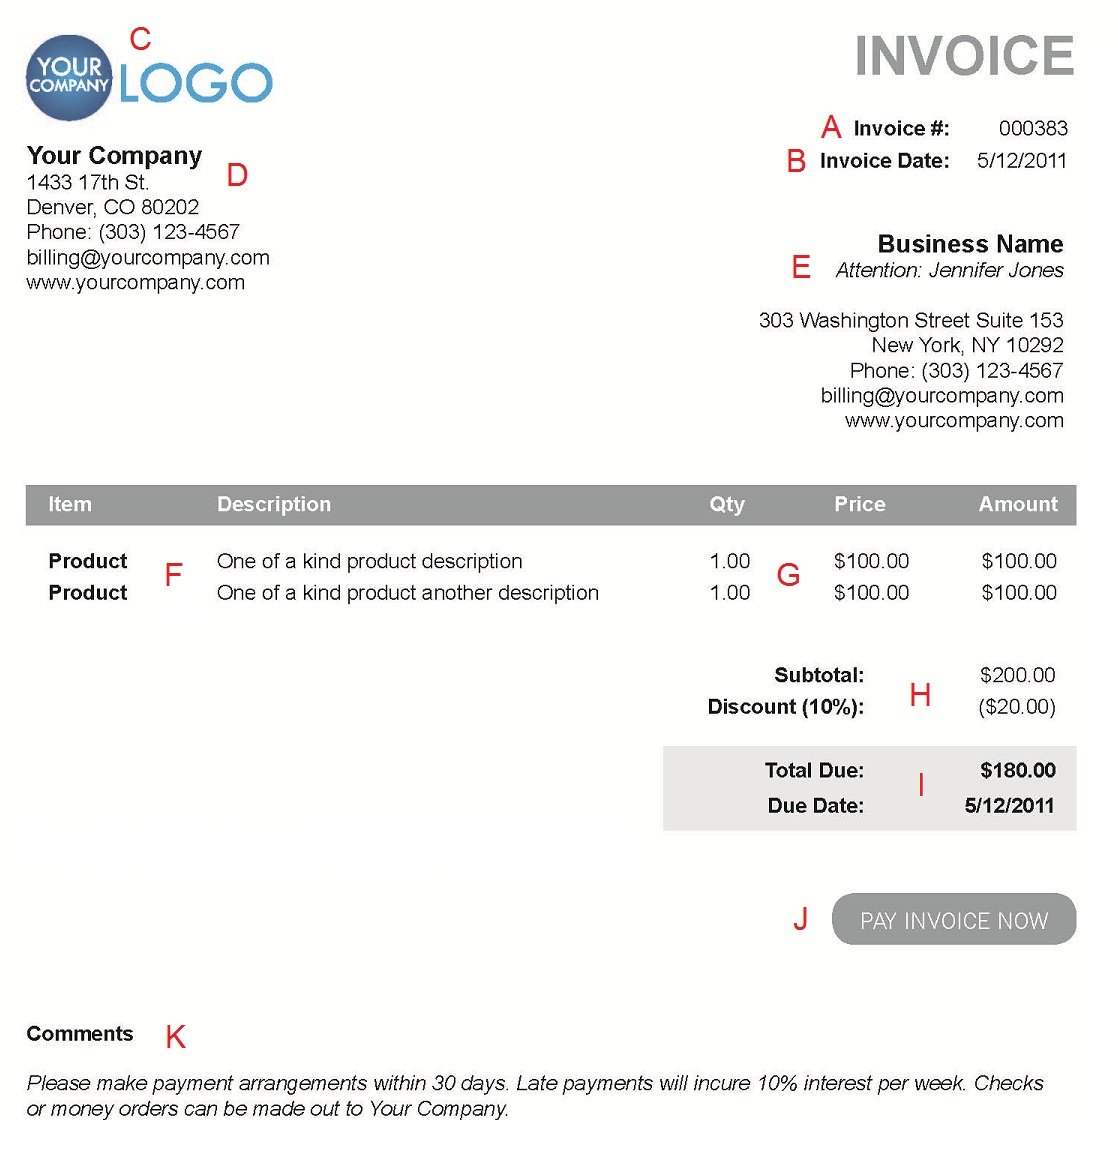 Coolmathgamesus  Stunning The  Different Sections Of An Electronic Payment Invoice With Outstanding A  With Archaic Infiniti Q Invoice Price Also Export Proforma Invoice Sample In Addition Format Of Tax Invoice And How To Write Up A Invoice As Well As Invoice Auditing Additionally How To Invoice A Company From Paysimplecom With Coolmathgamesus  Outstanding The  Different Sections Of An Electronic Payment Invoice With Archaic A  And Stunning Infiniti Q Invoice Price Also Export Proforma Invoice Sample In Addition Format Of Tax Invoice From Paysimplecom